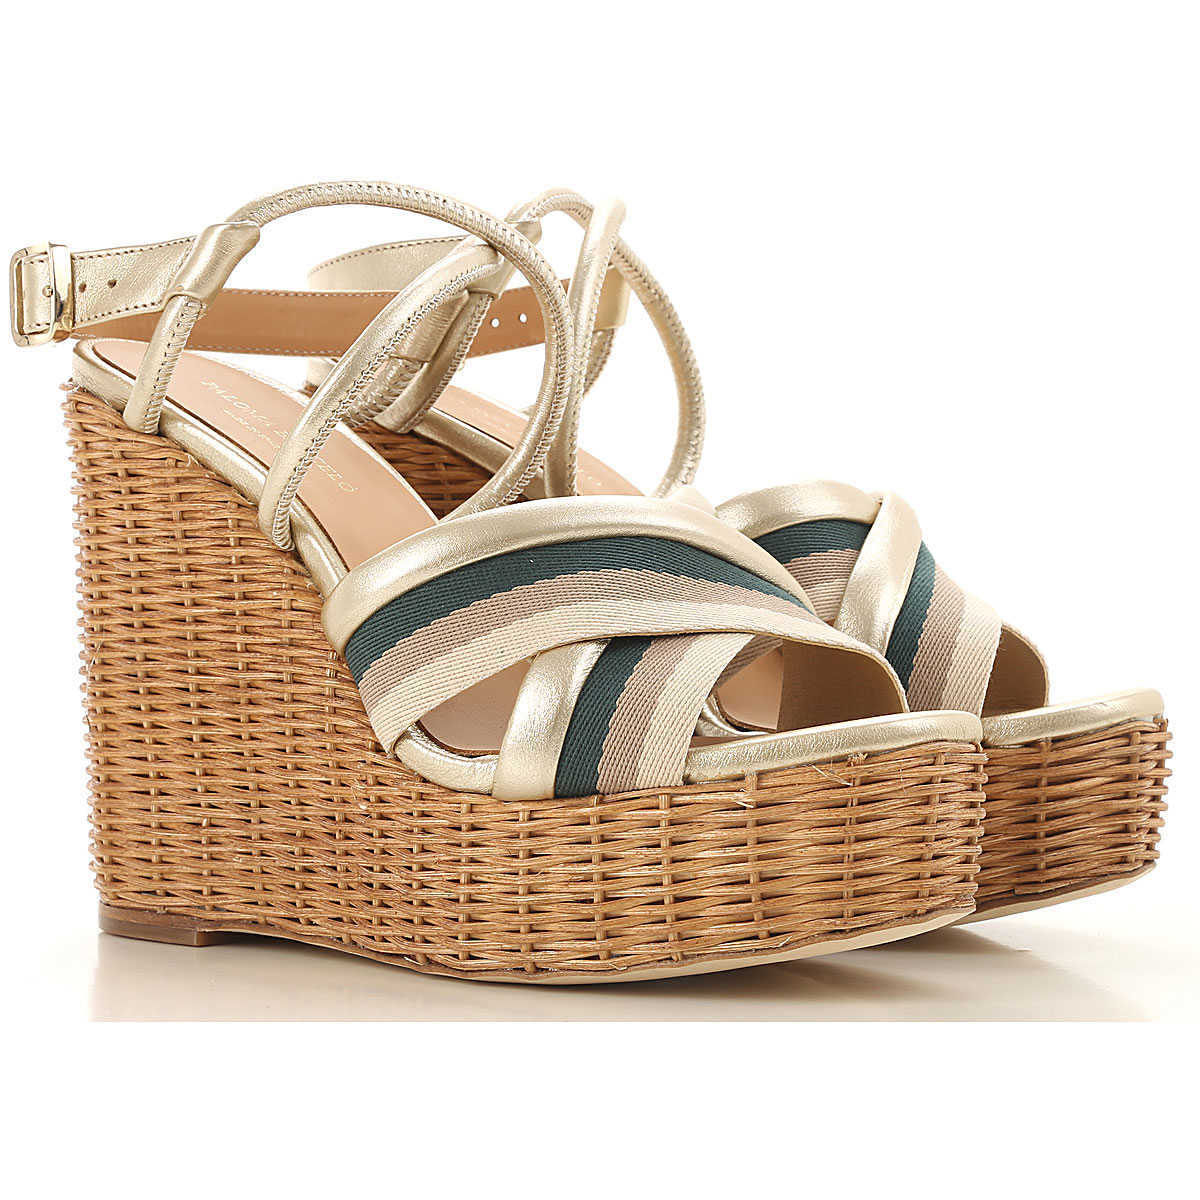 Paloma Barcelo Wedges for Women Platinum Canada - GOOFASH - Womens HOUSE SHOES